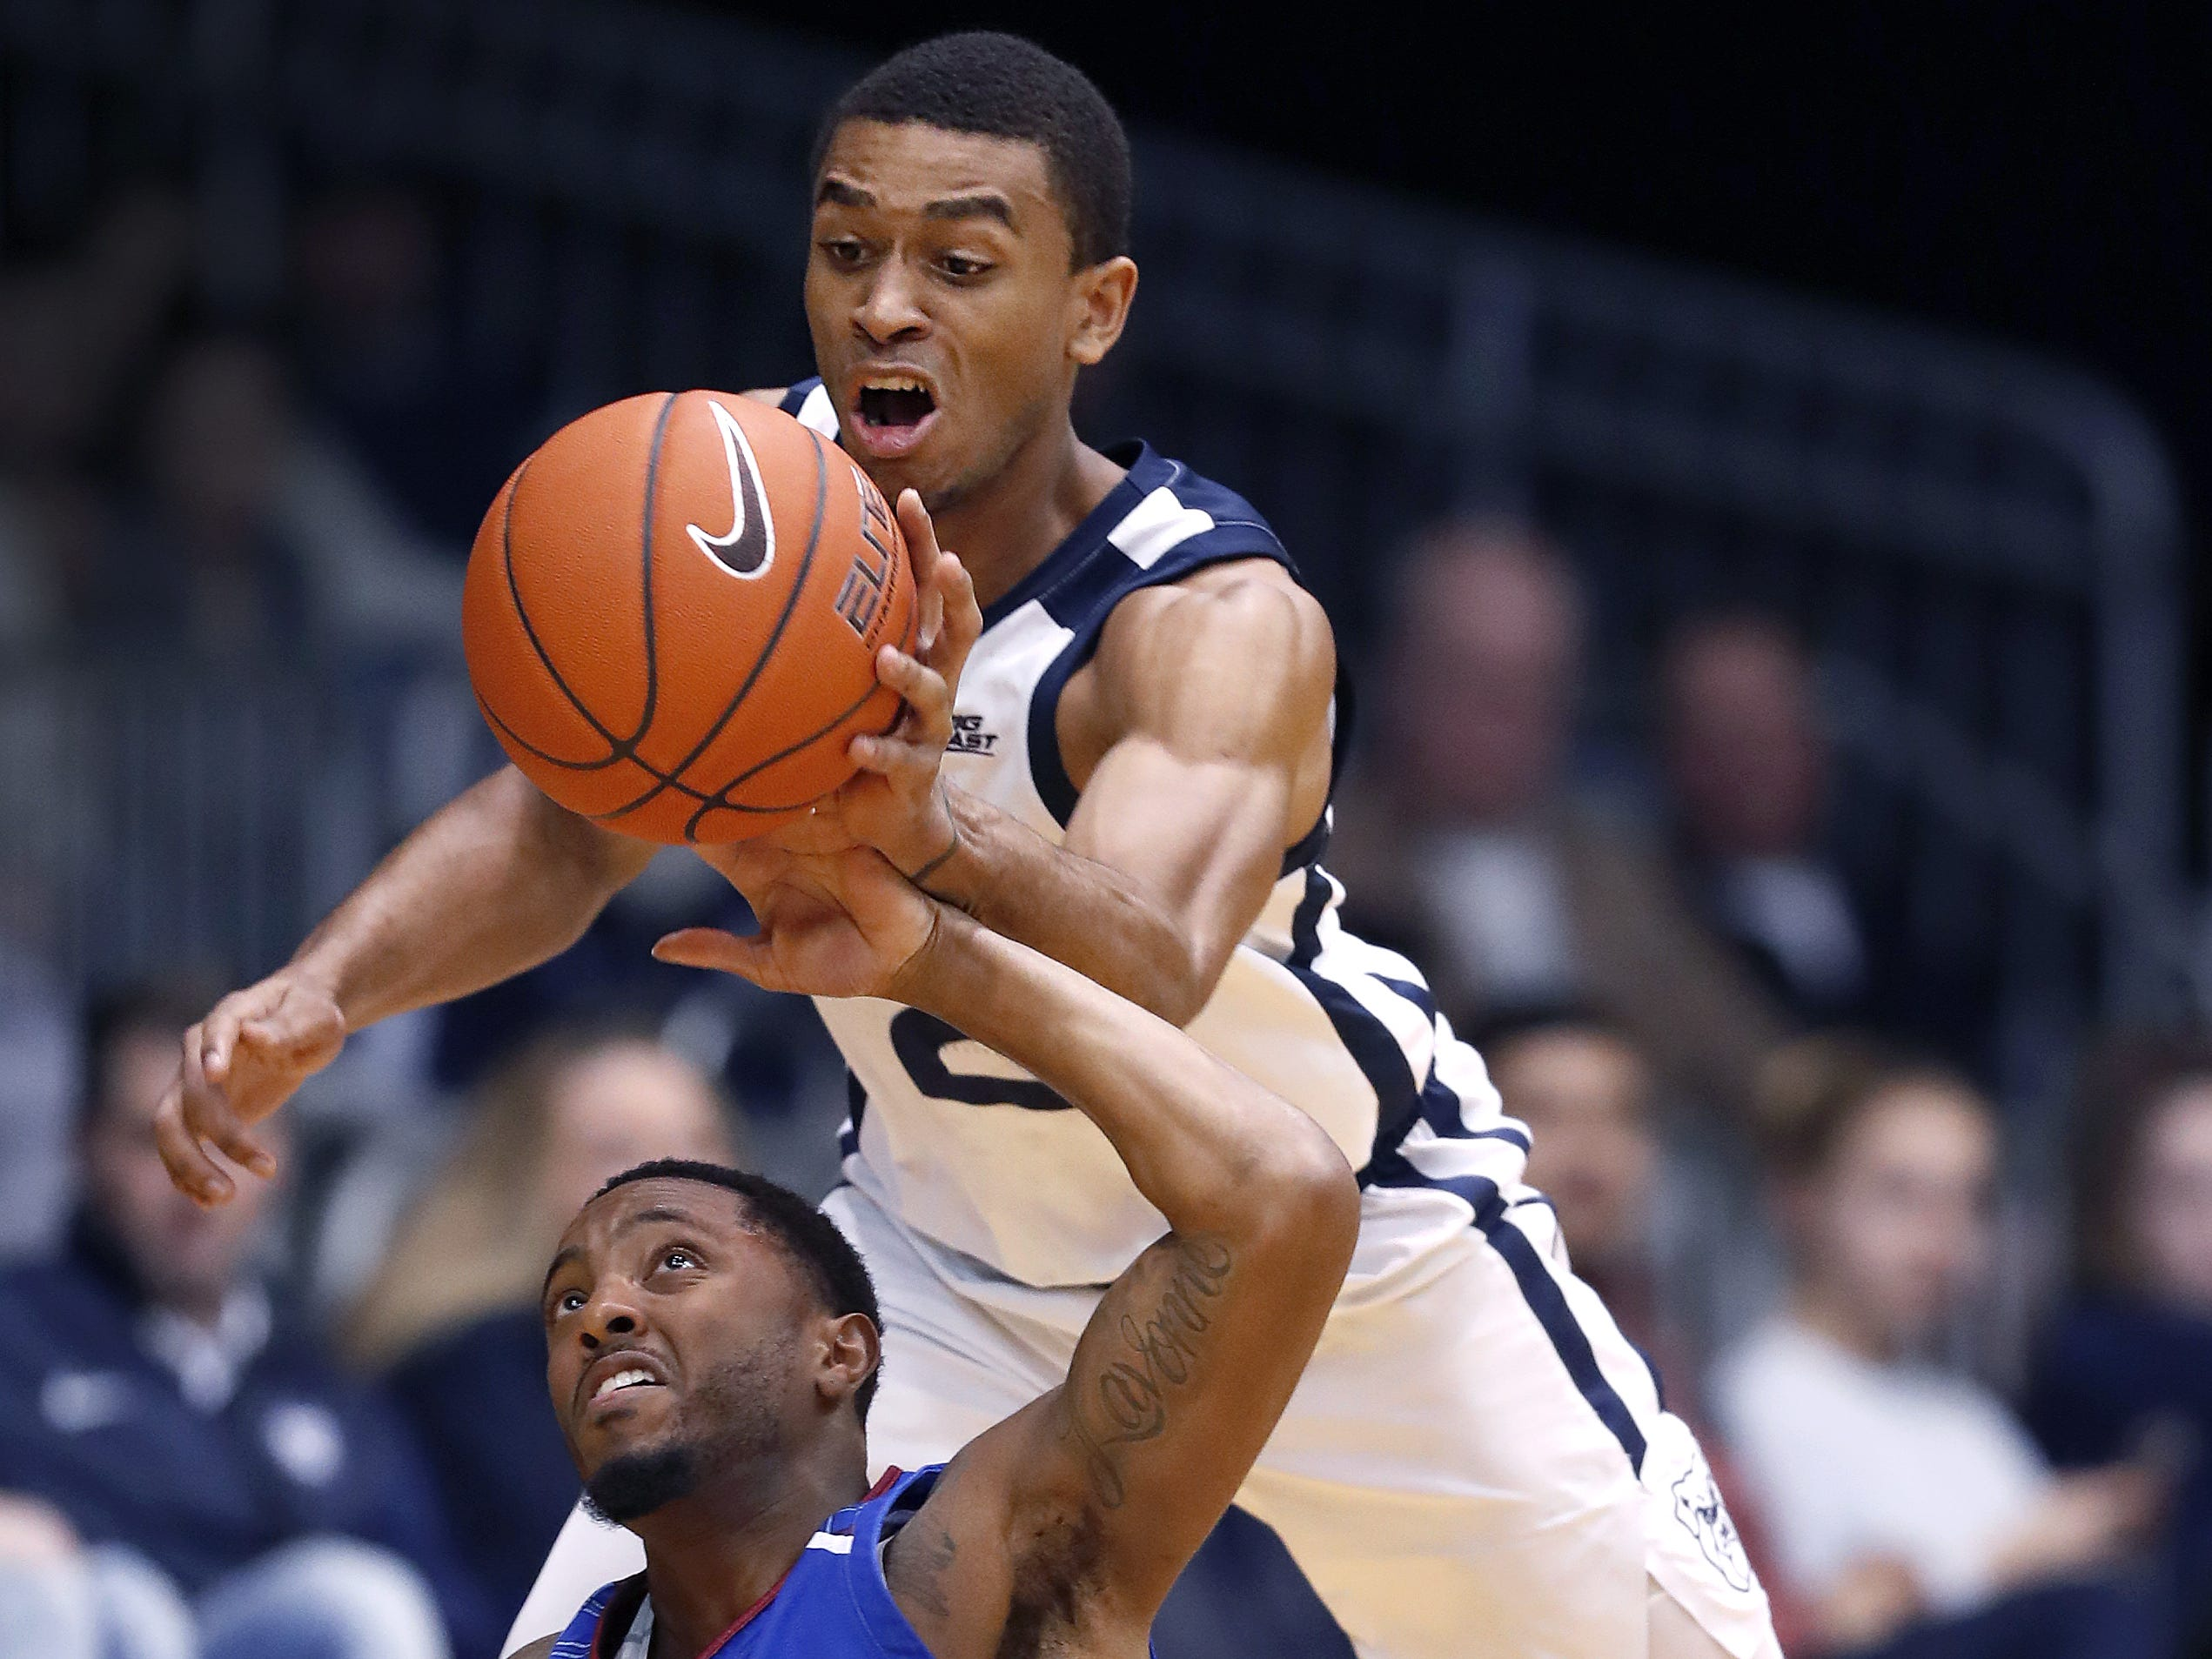 Butler Bulldogs guard Aaron Thompson (2) steals the ball from Presbyterian Blue Hose guard Davon Bell (5) in the first half of their game at Hinkle Fieldhouse on Monday, Dec. 18, 2018.